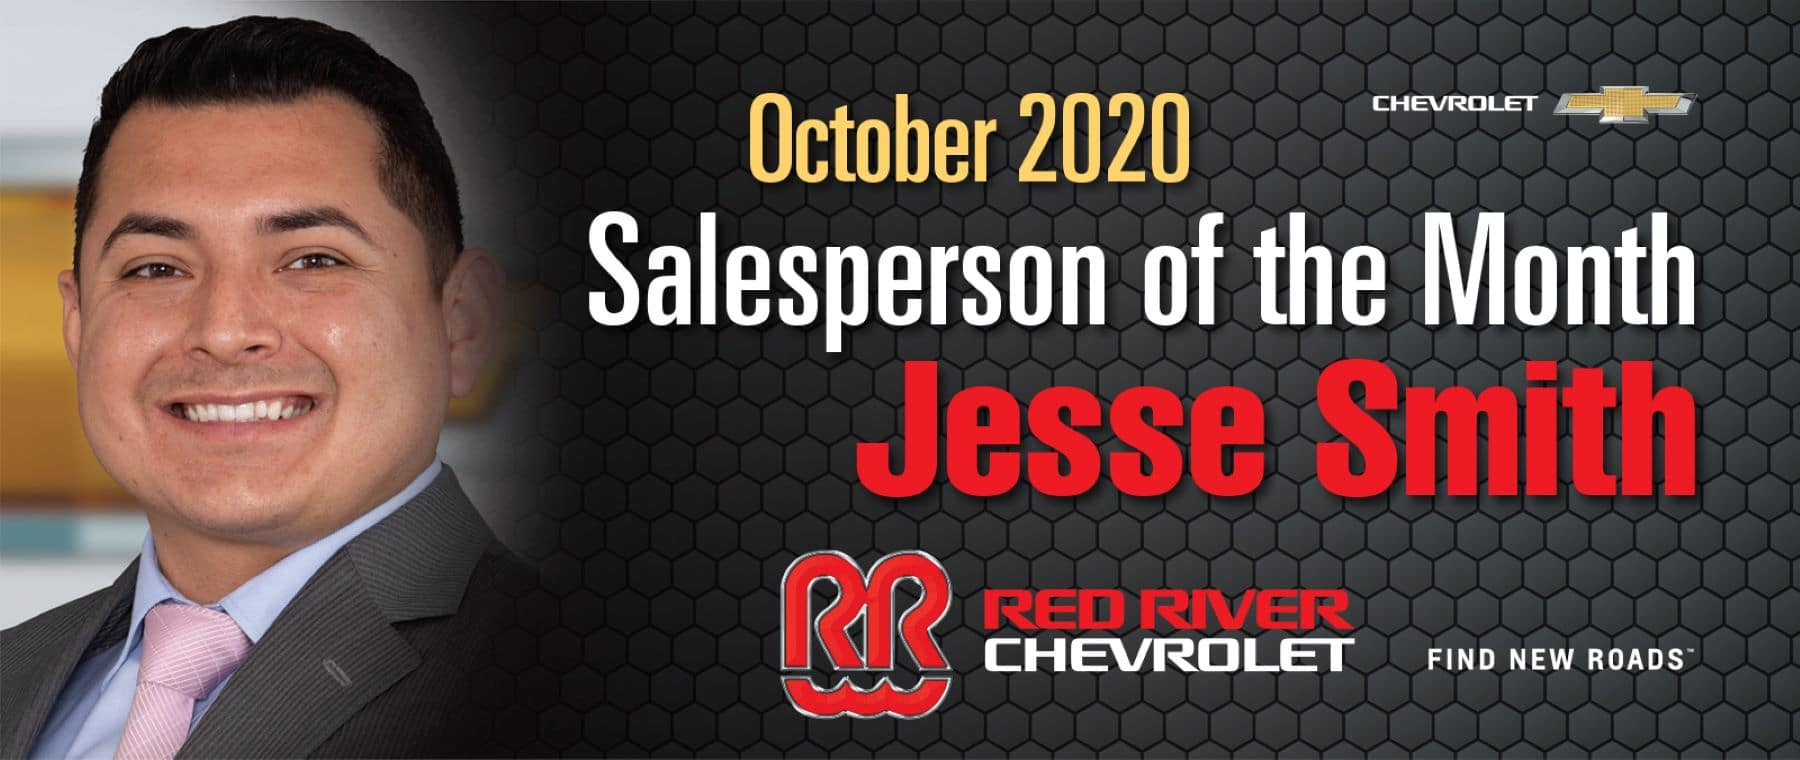 Salesperson of the Month October 2020